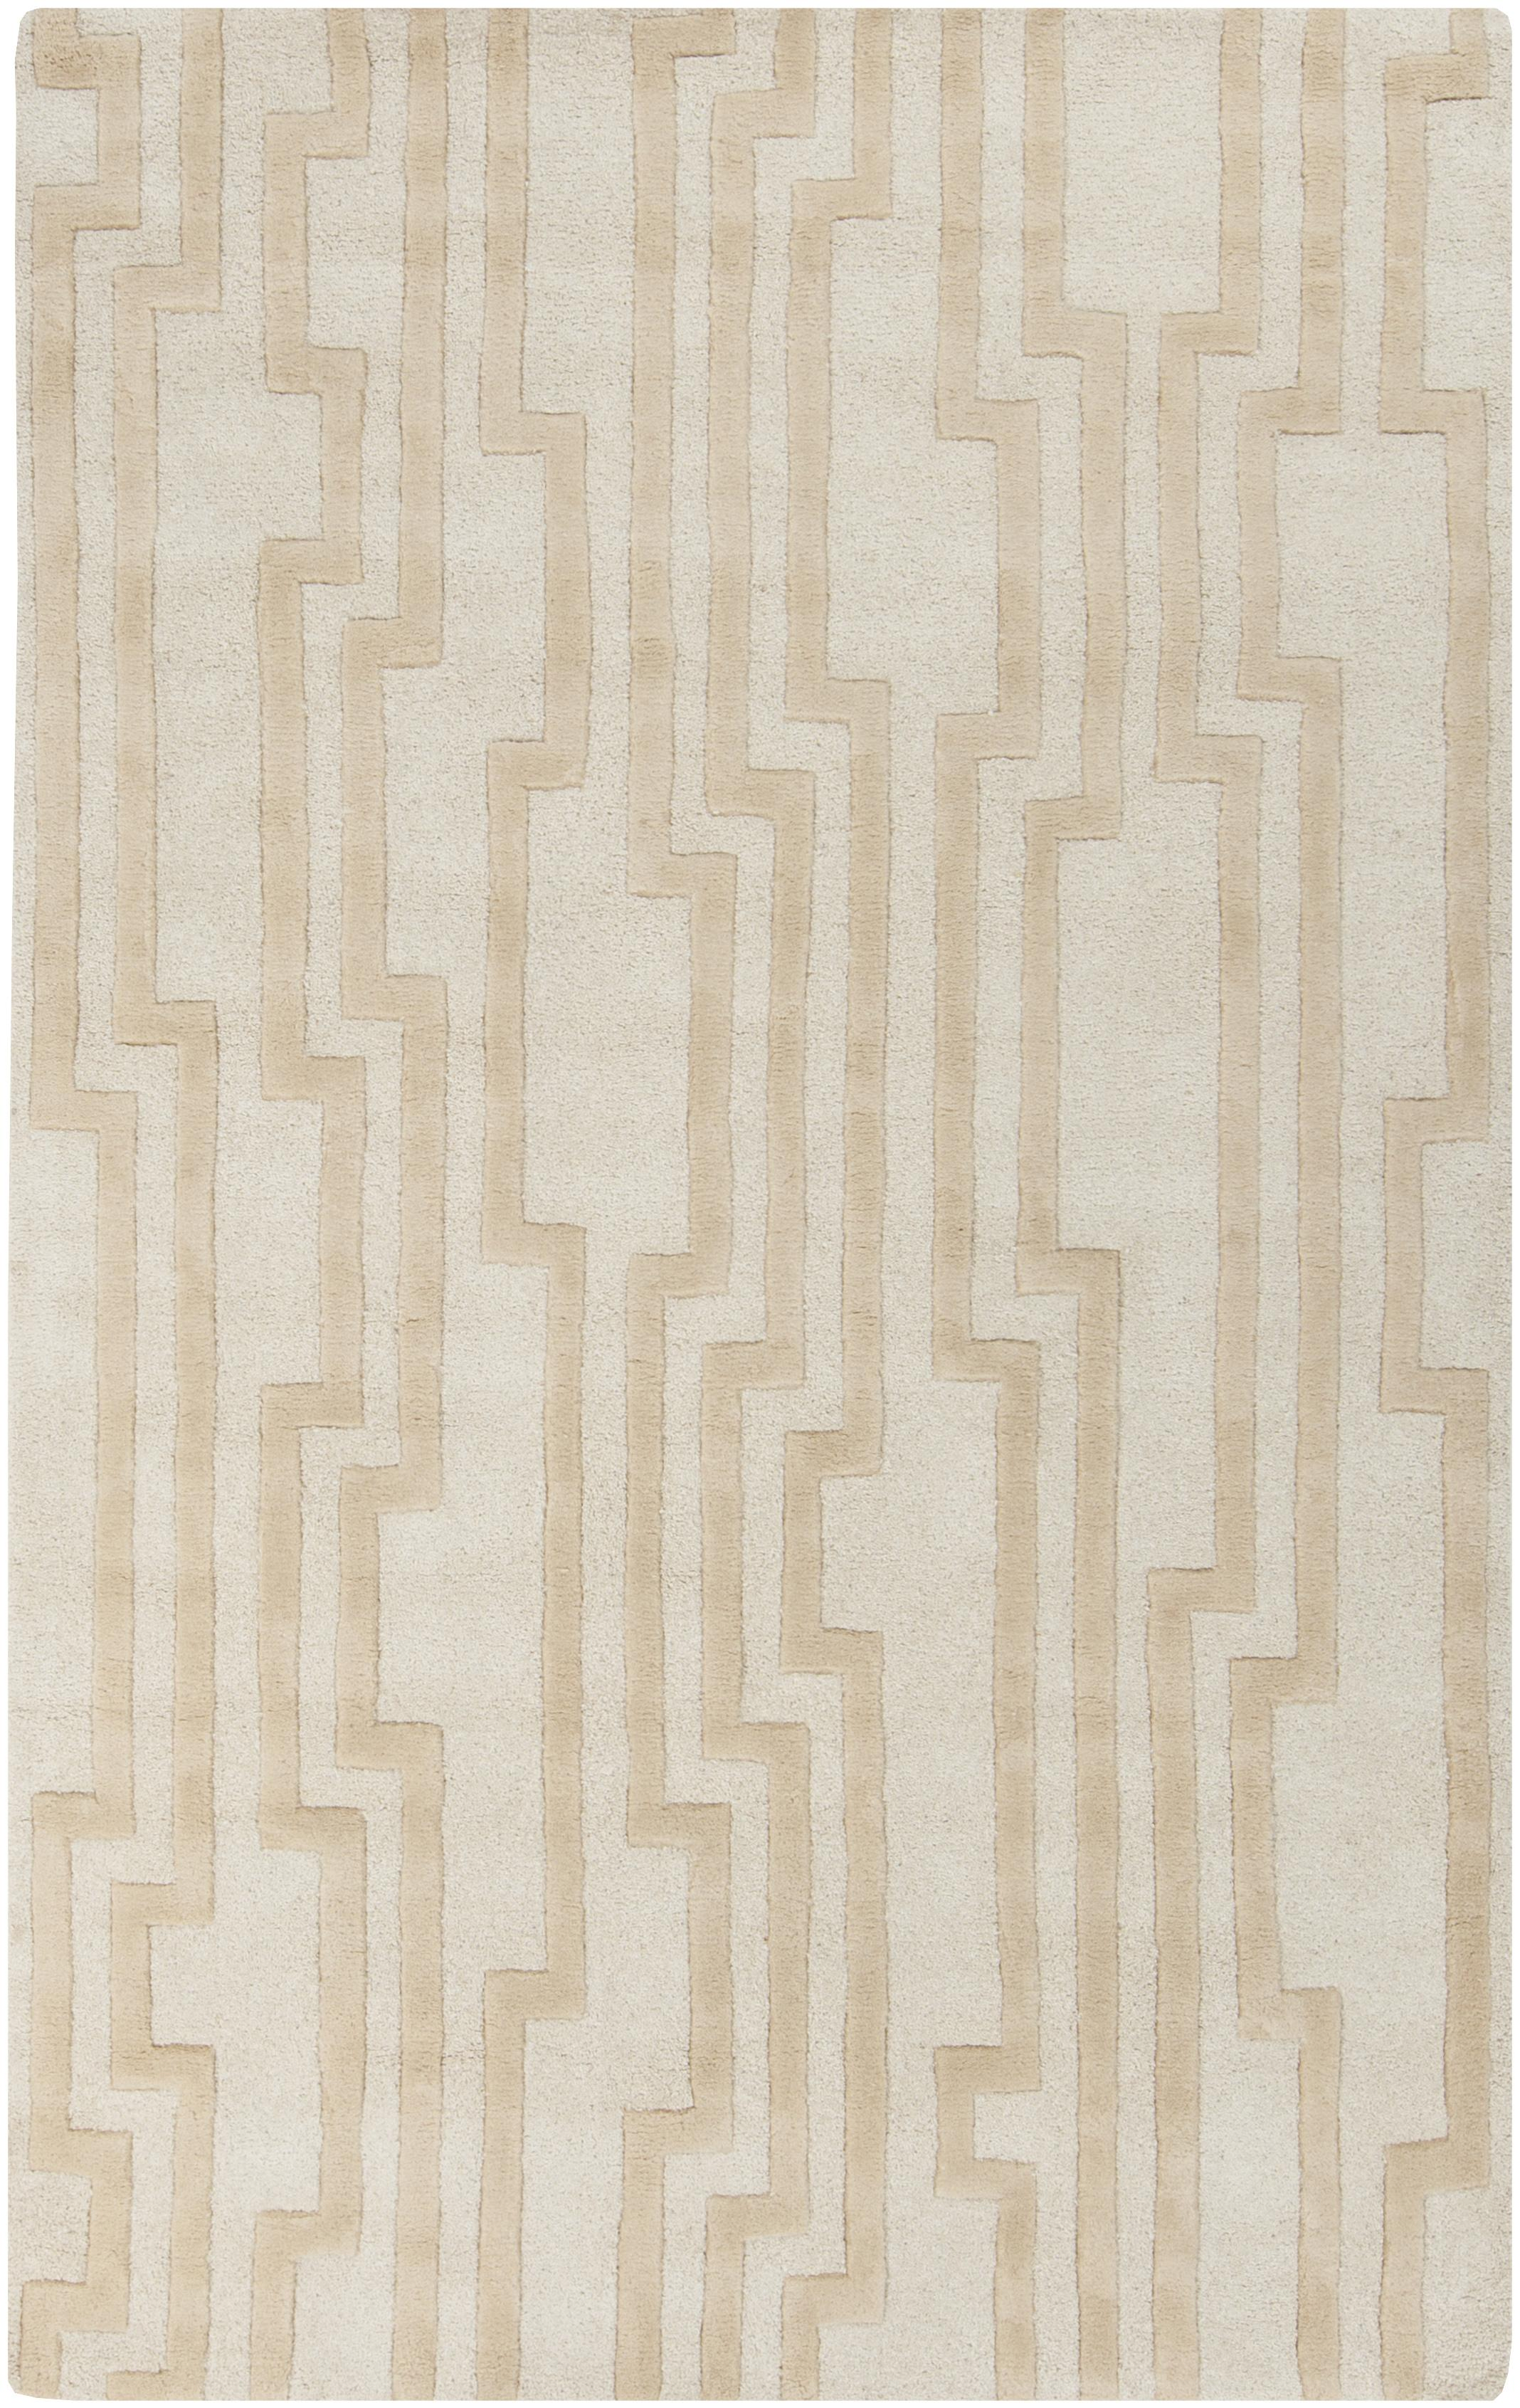 Surya Modern Classics 5' x 8' - Item Number: CAN2021-58